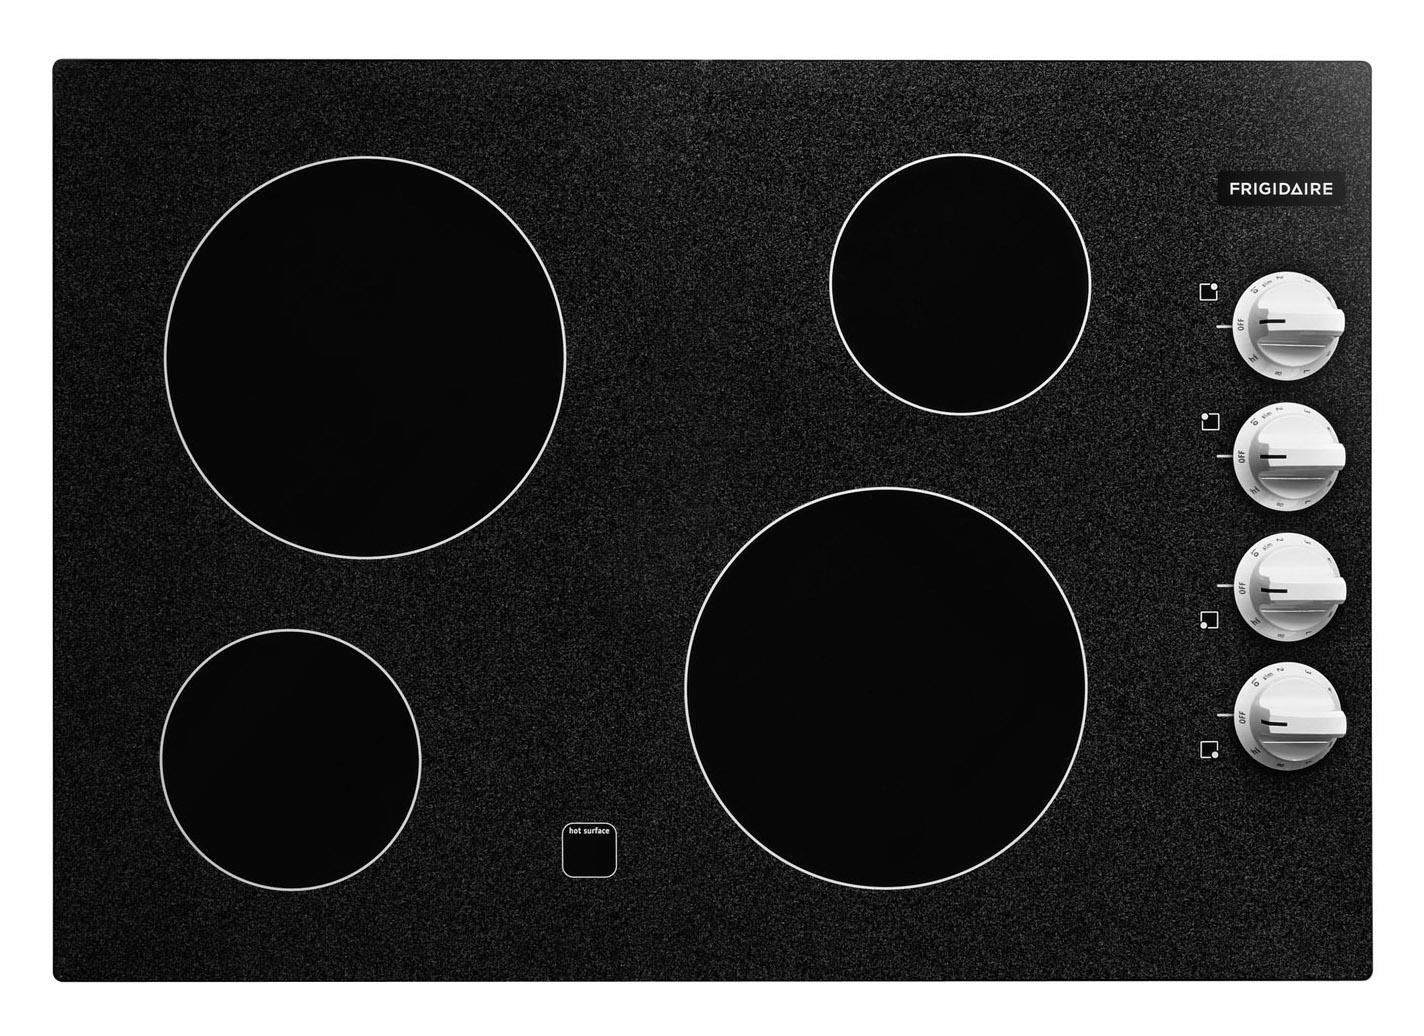 Frigidaire: FFEC3024LW 30'' Electric Cooktop with 4 Cooking Zones, Ready-Select Controls, Ceramic Glass Cooktop and SpillSaver Design: White Trim